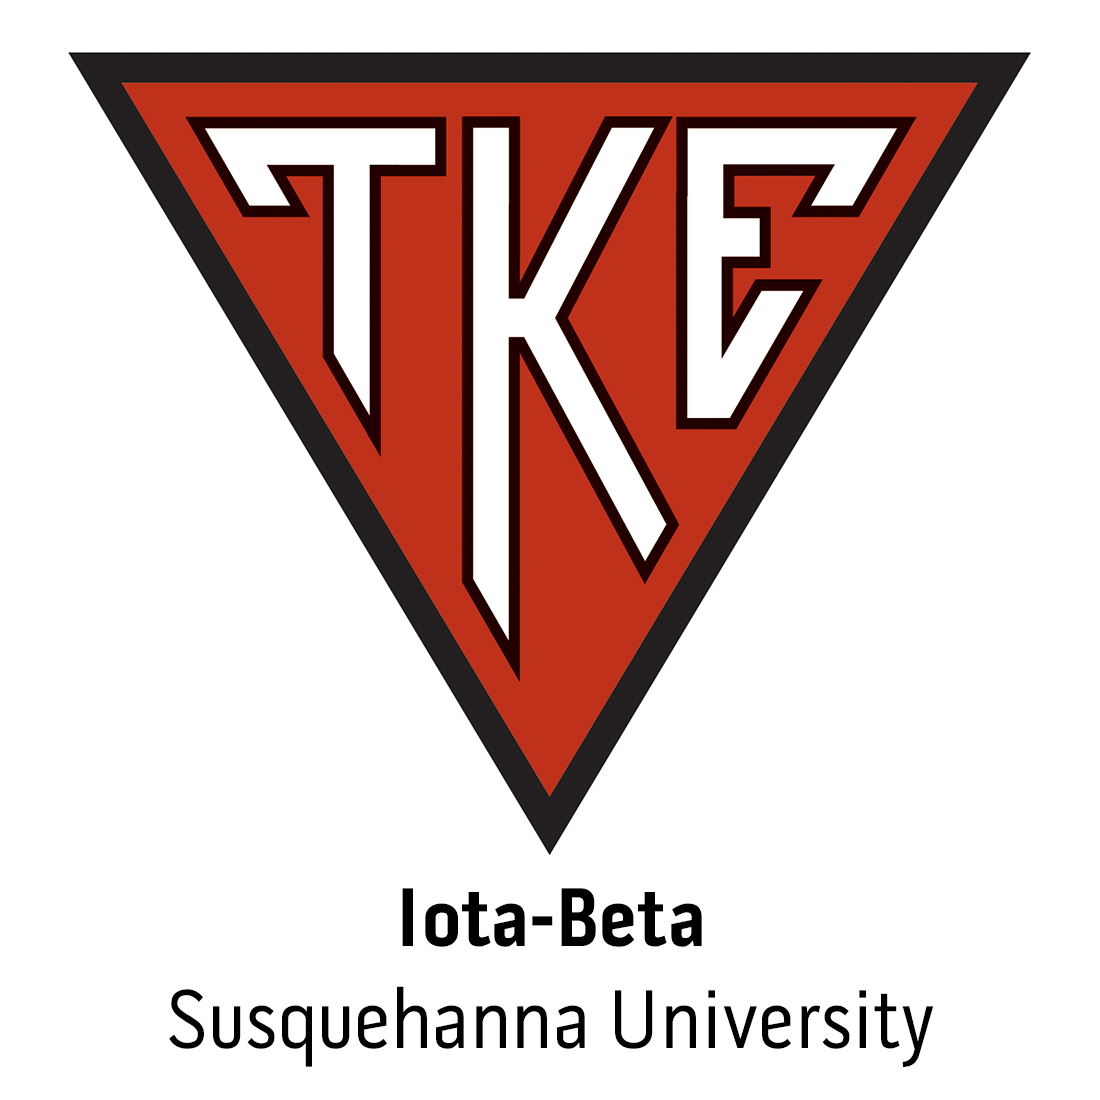 Iota-Beta Chapter at Susquehanna University